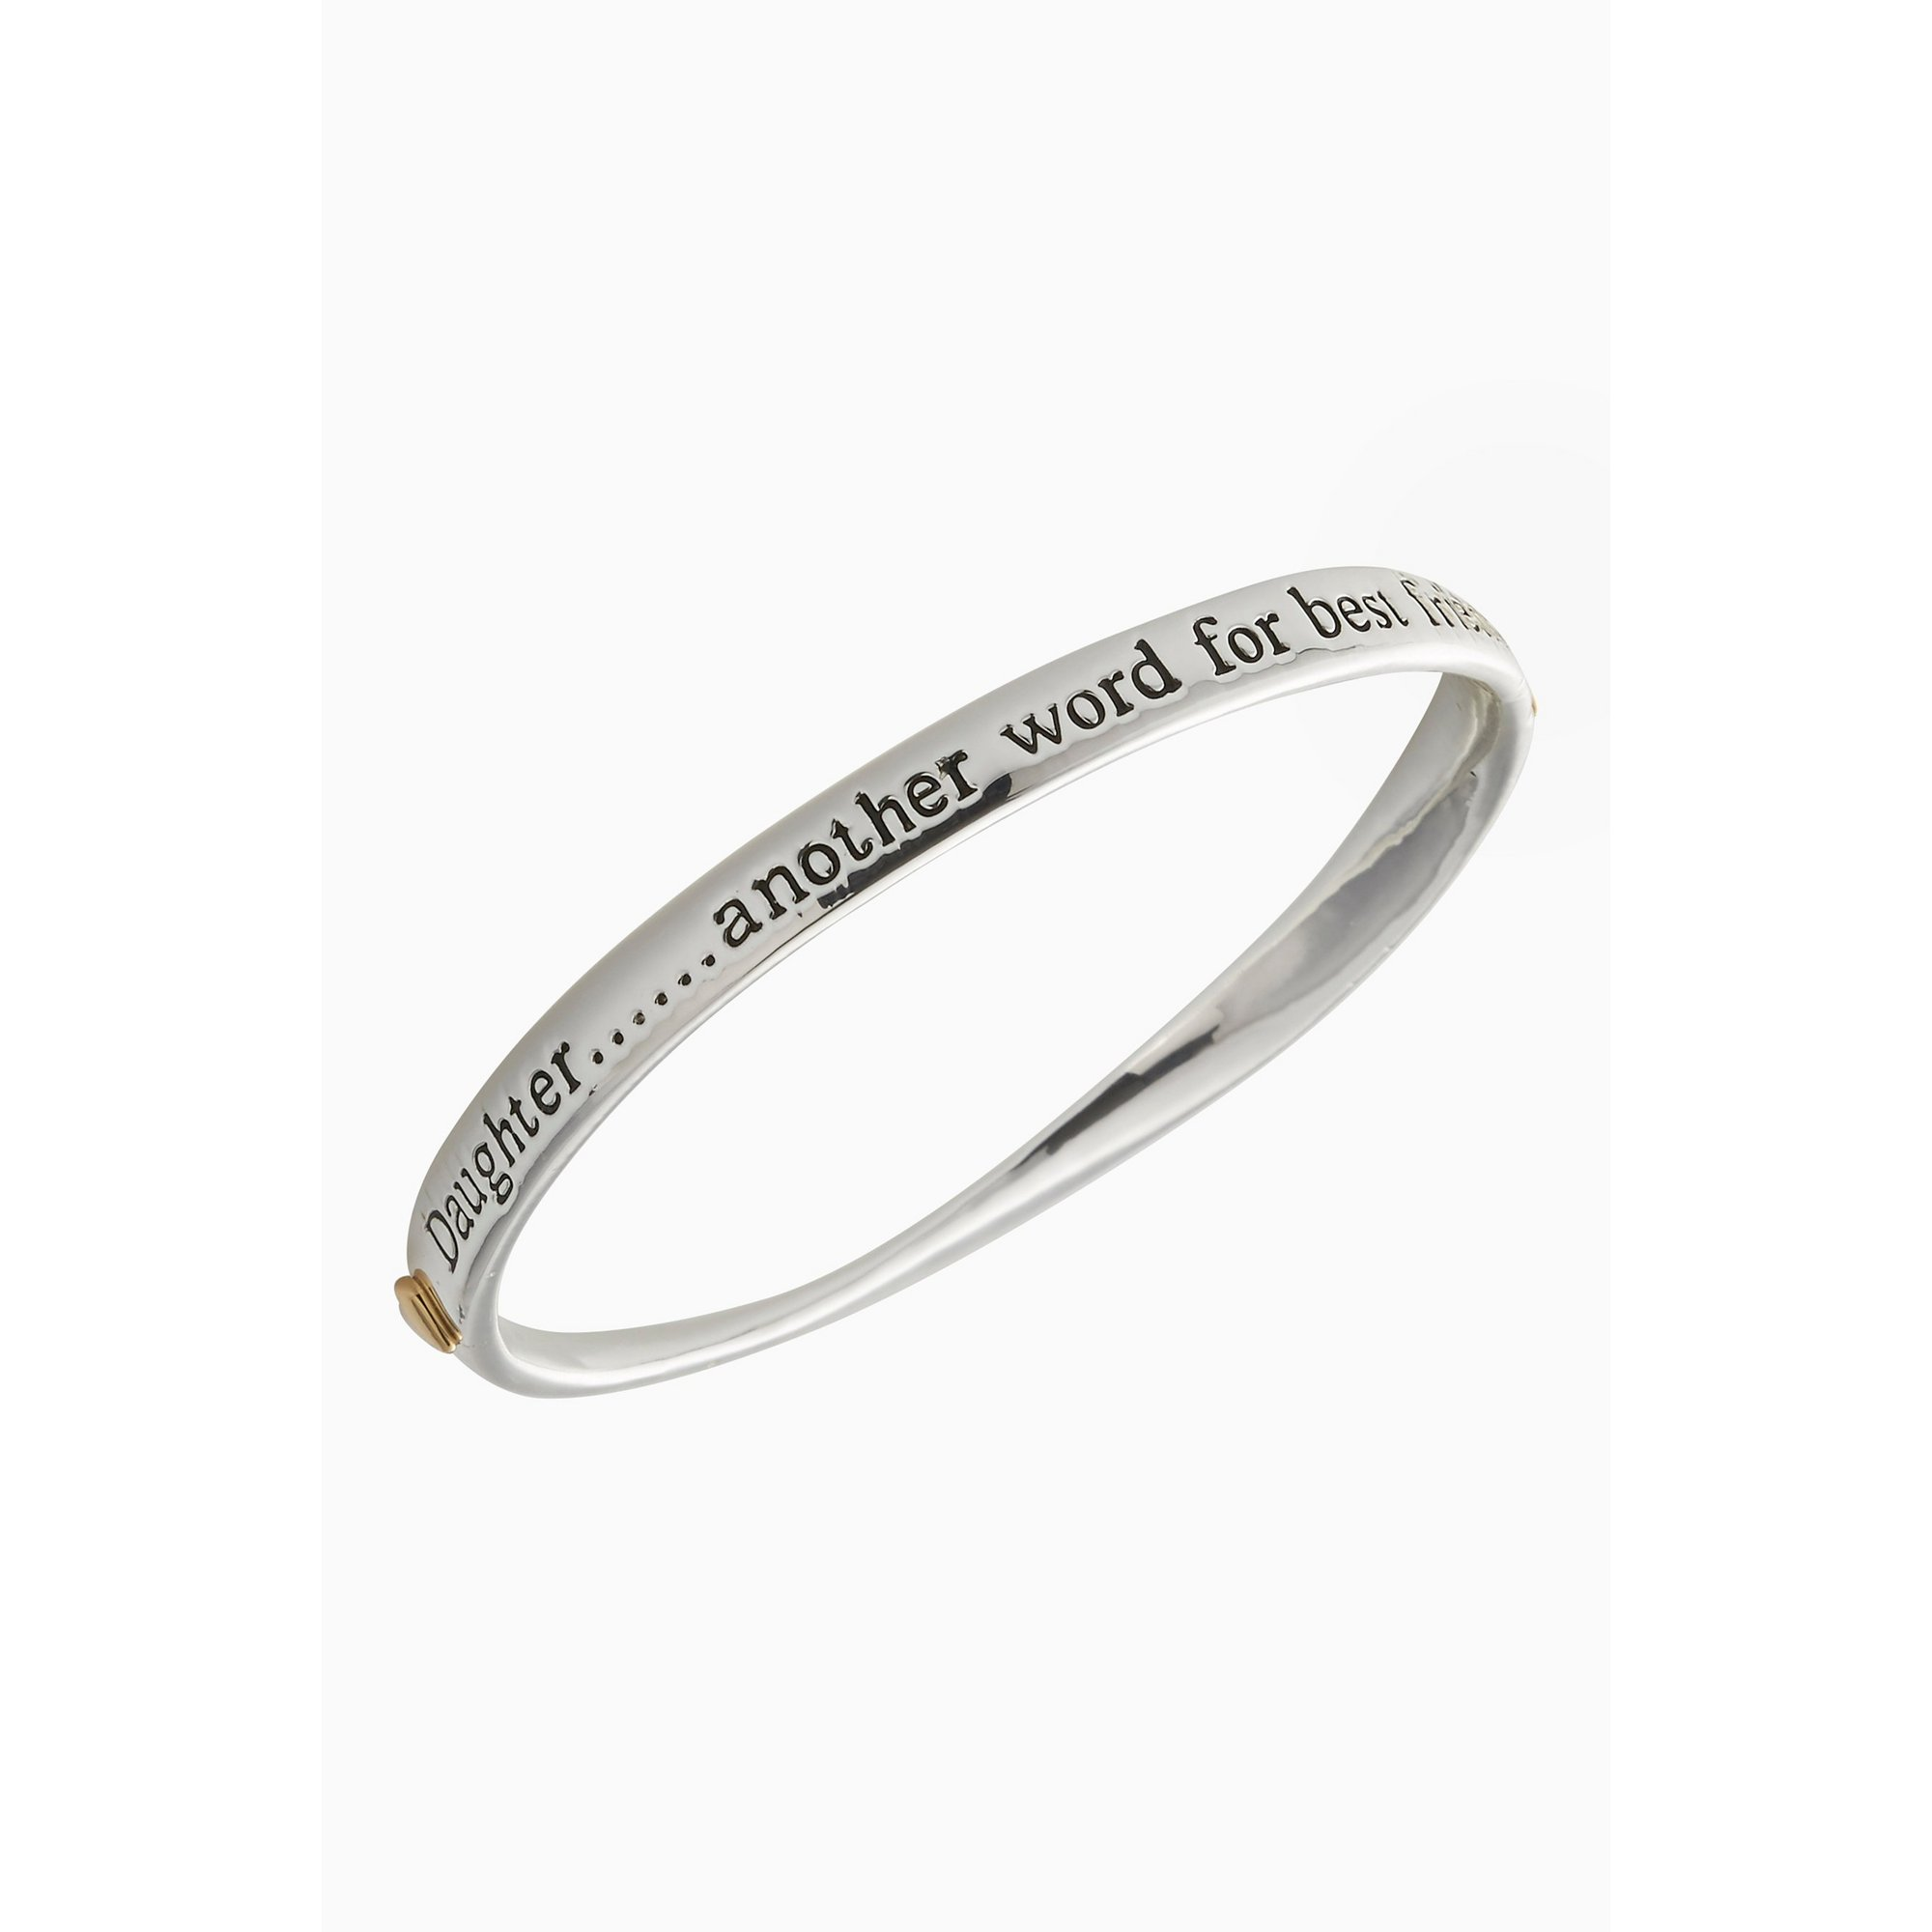 Image of Equilibrium Silver Plated 2 Tone Daughter Bangle